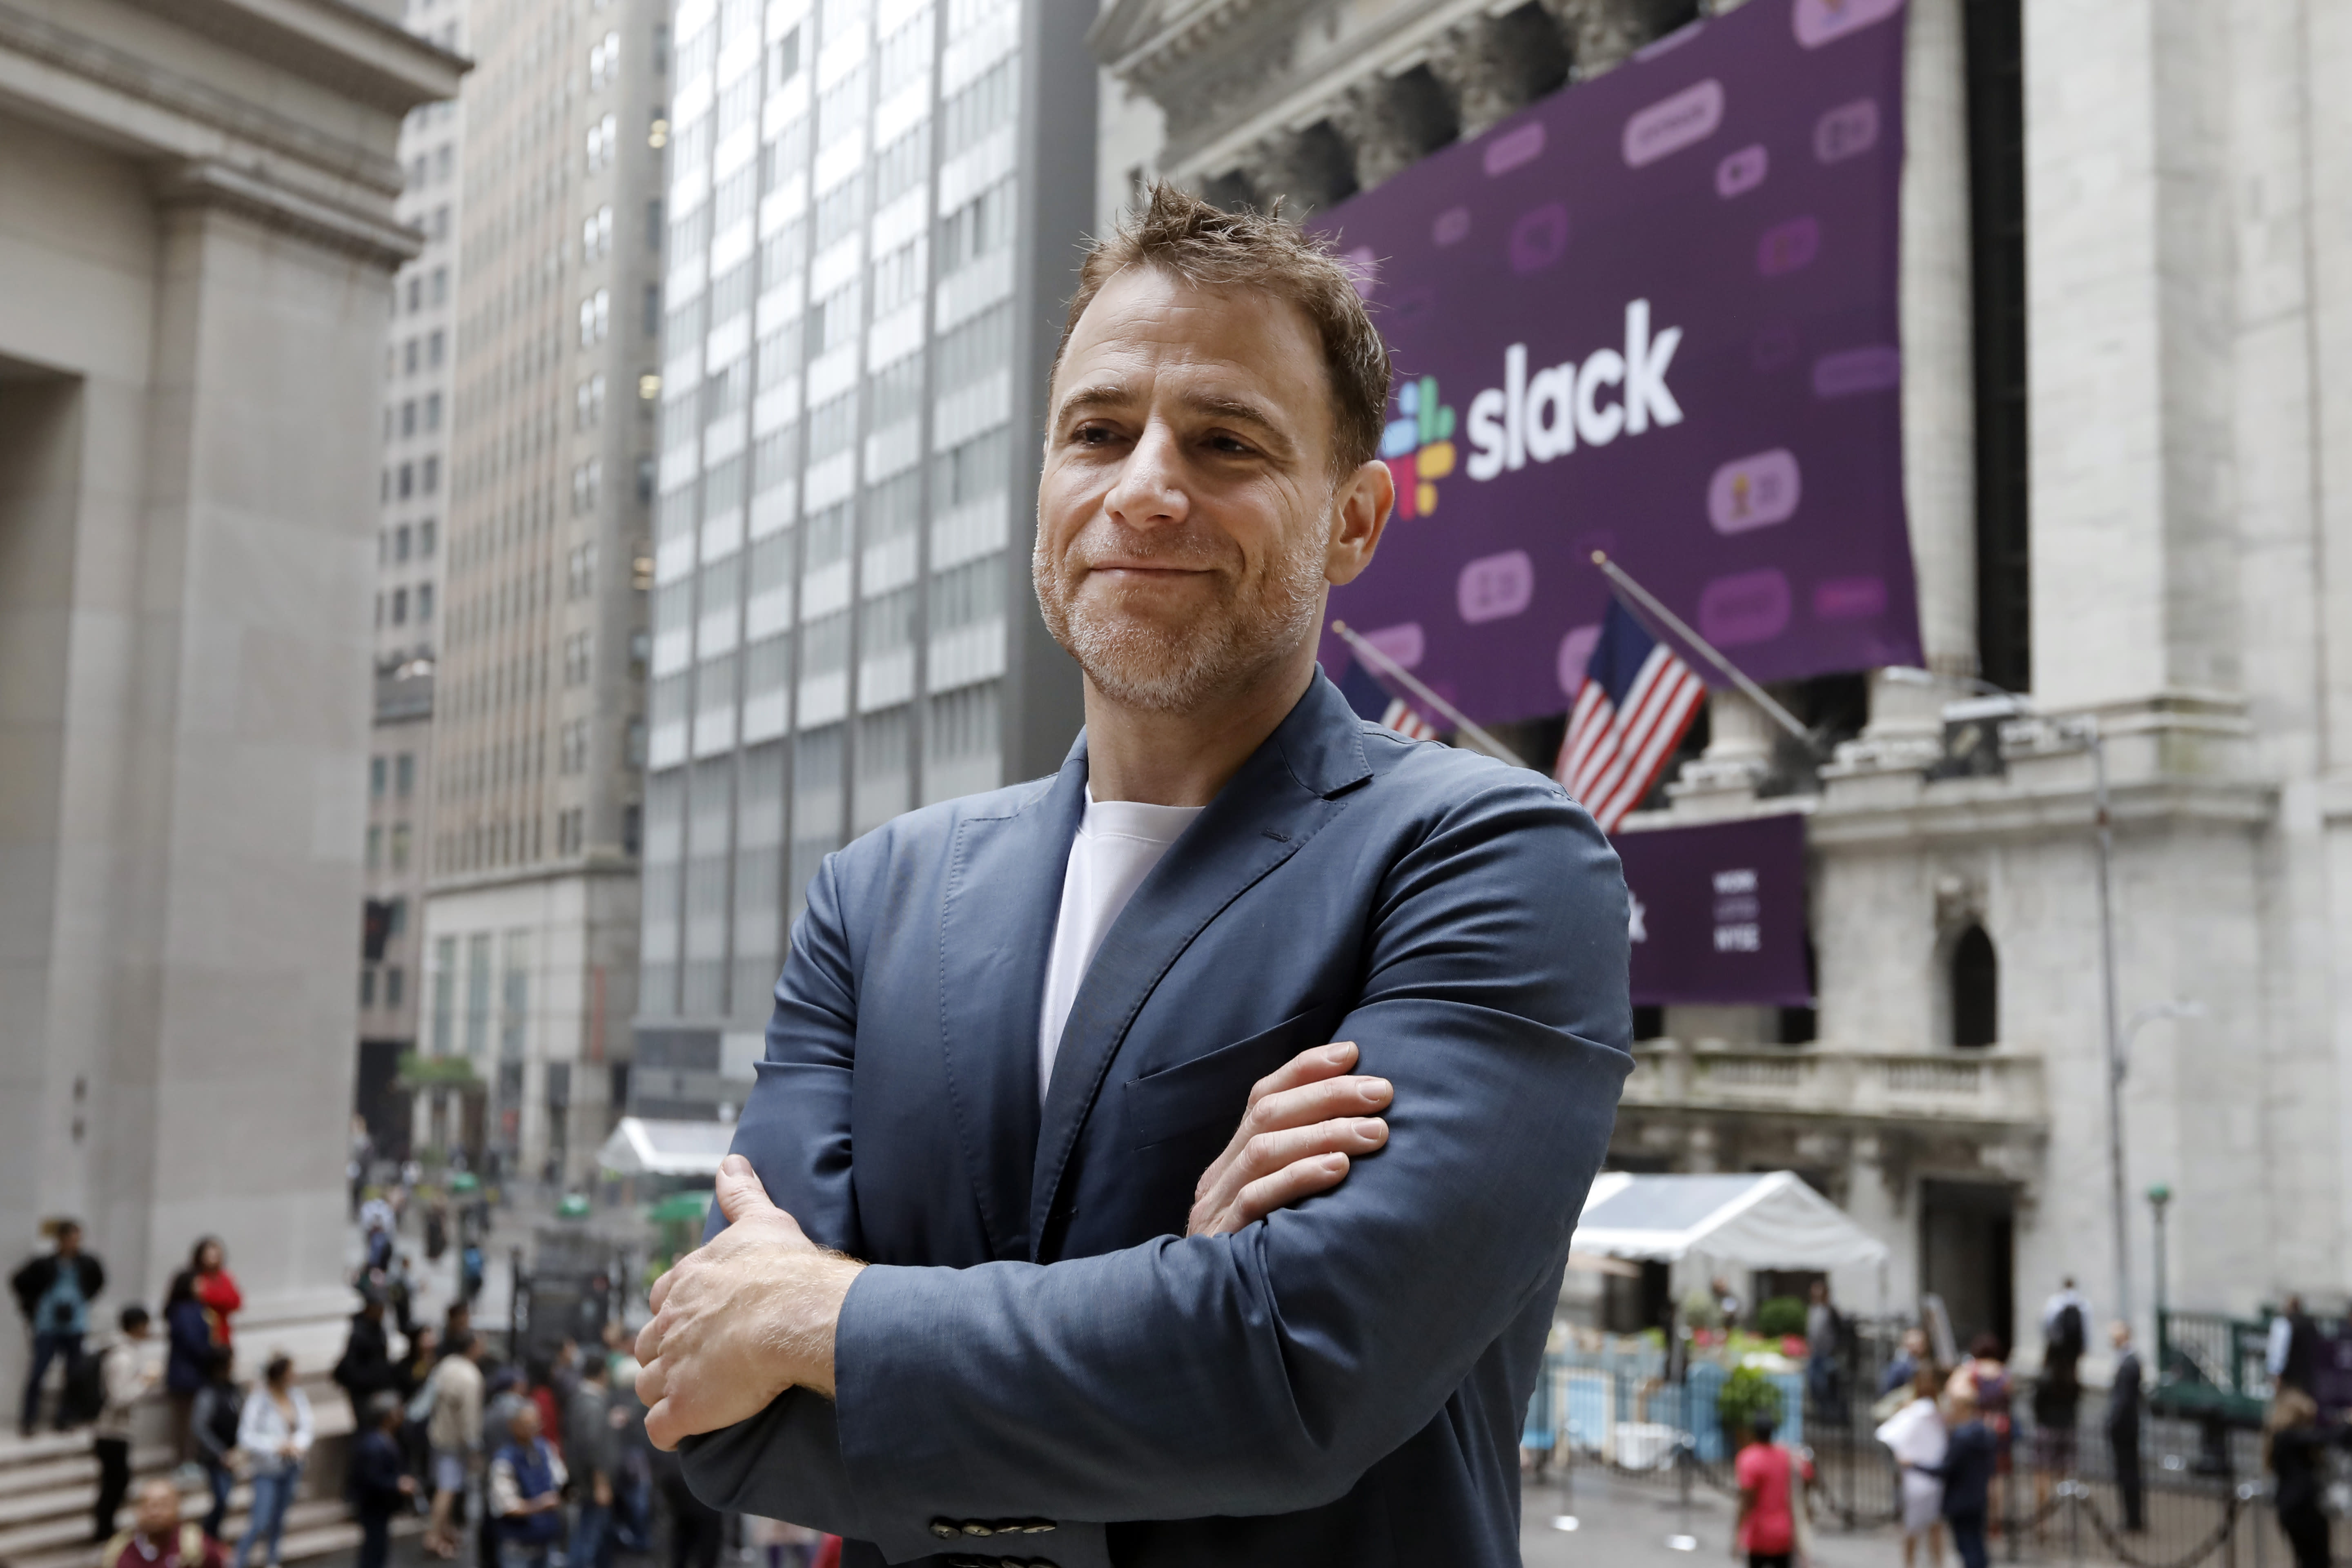 These tech giants may be gearing up for post COVID-19 acquisitions